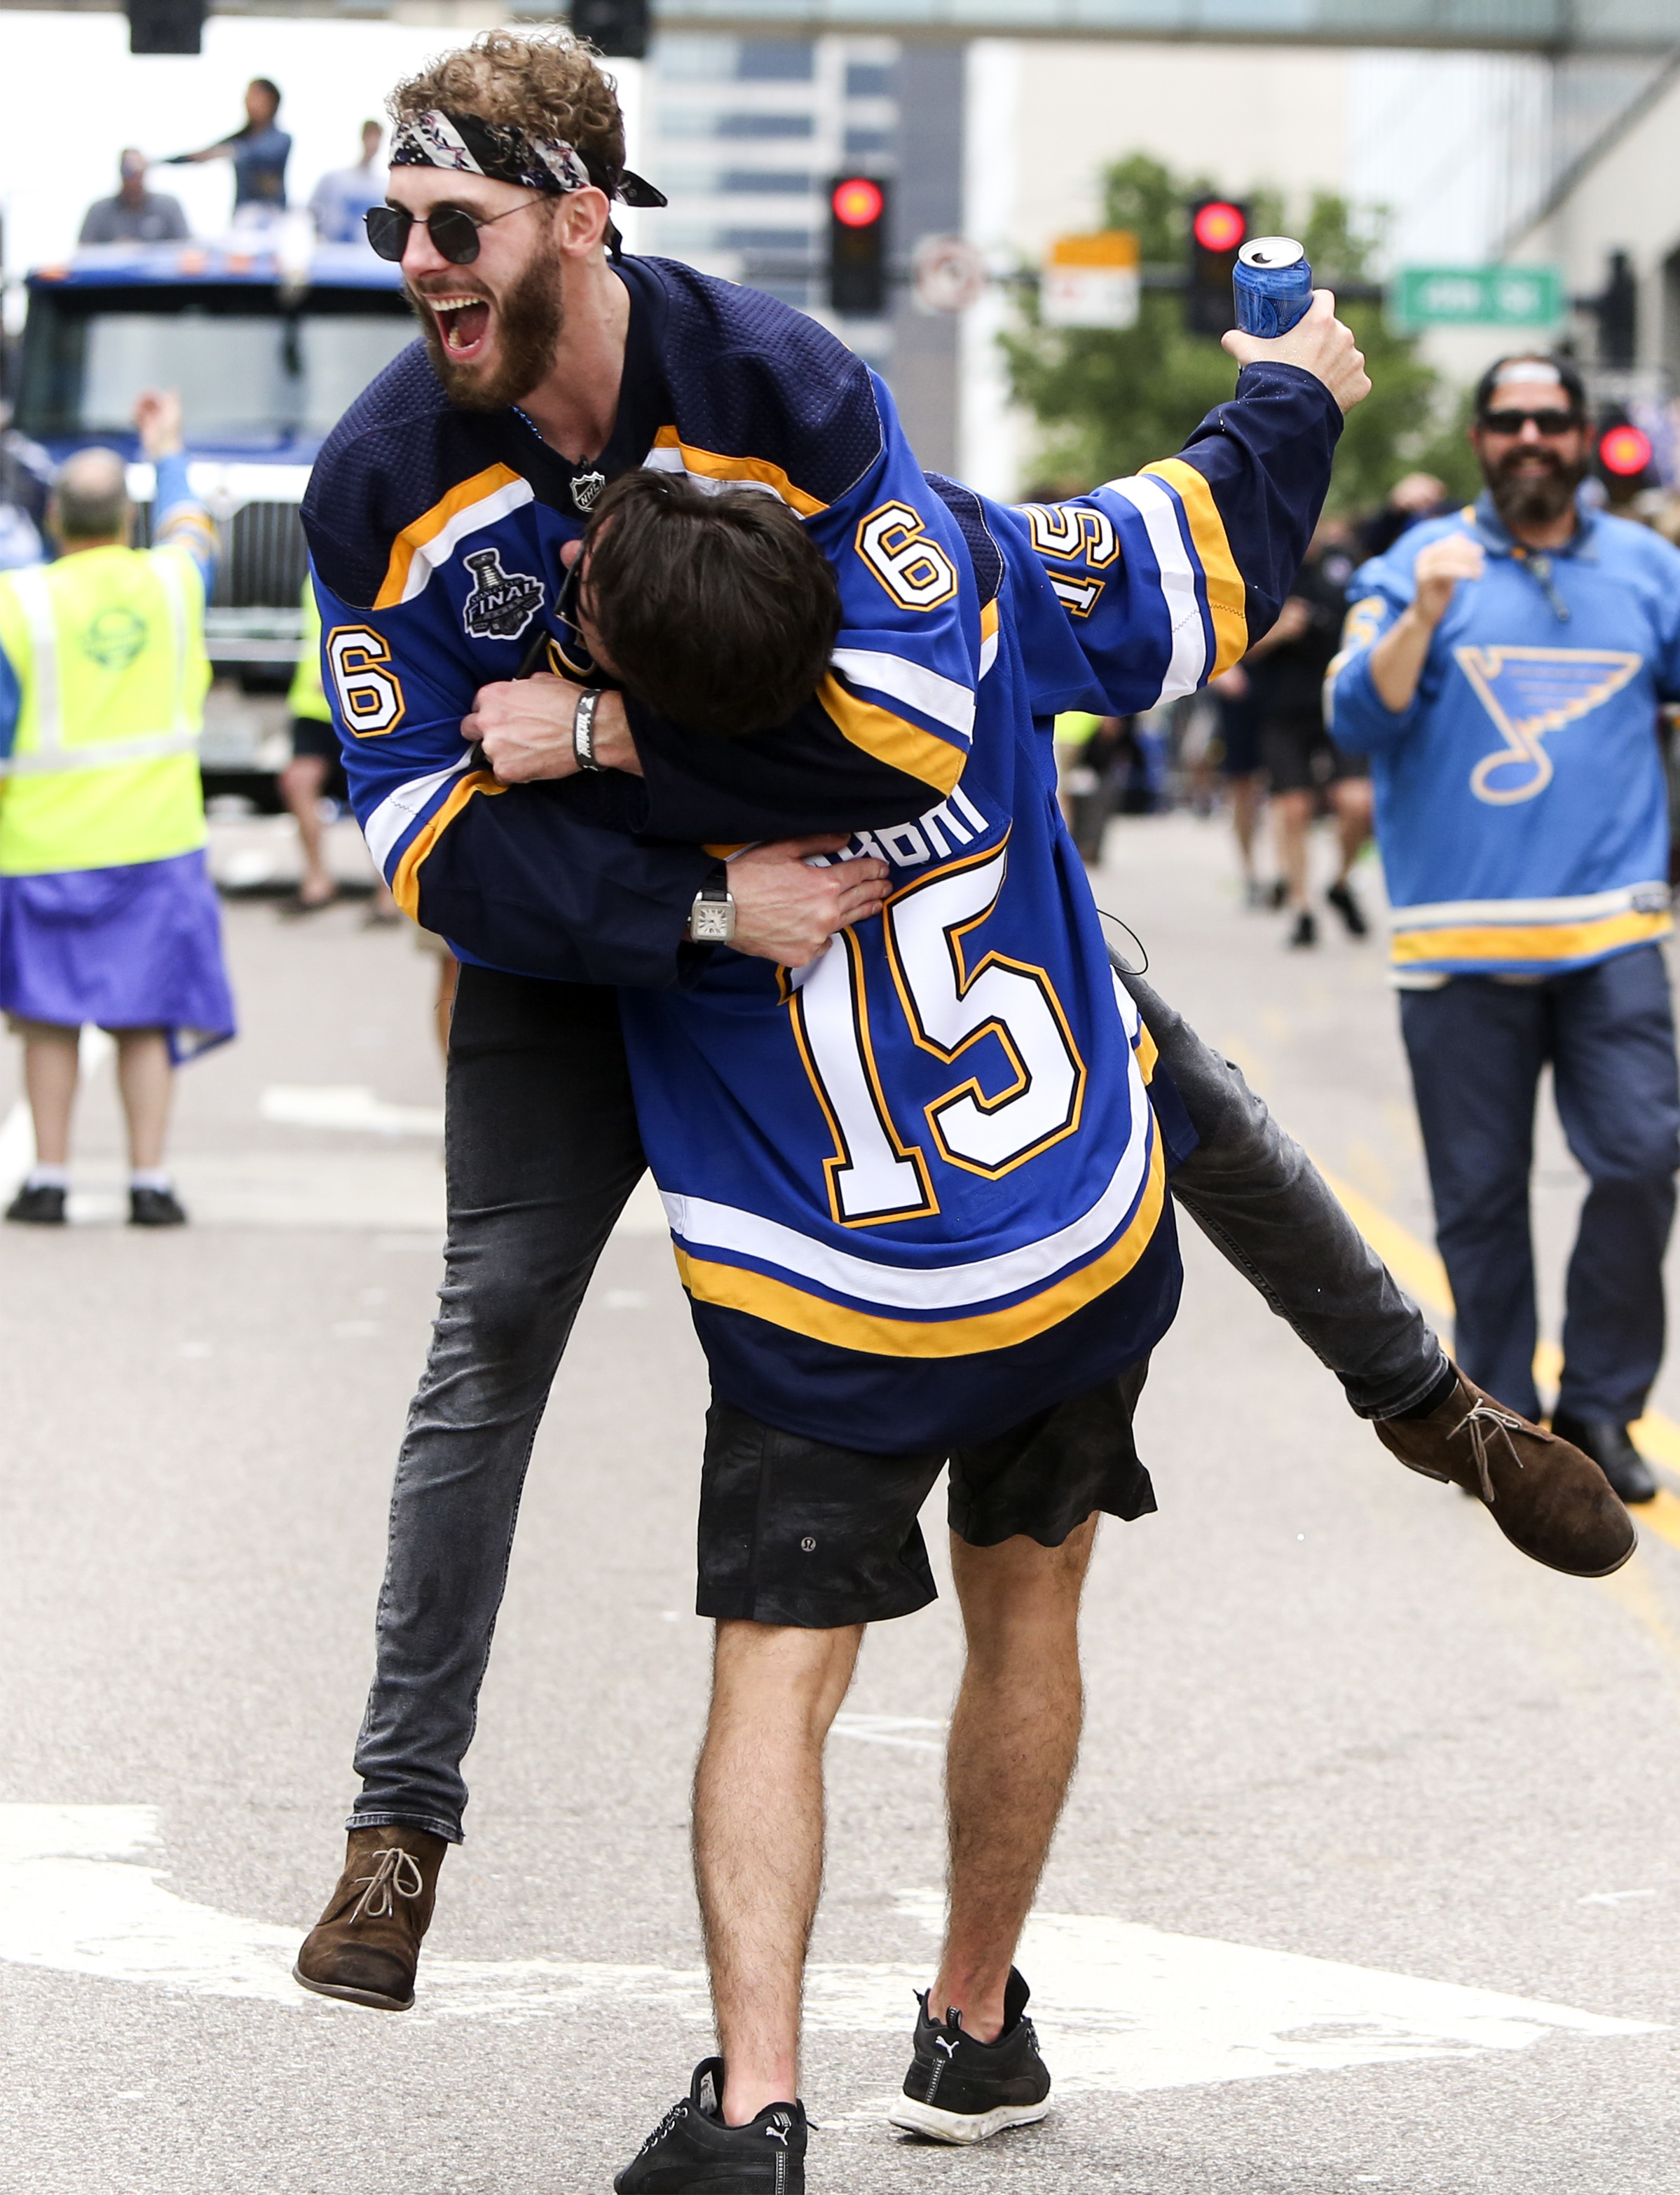 Joel Edmundson jumps on Robby Fabbri during the Blues Stanley Cup victory parade on Saturday, June 15, 2018 along Market Street in Downtown St. Louis.